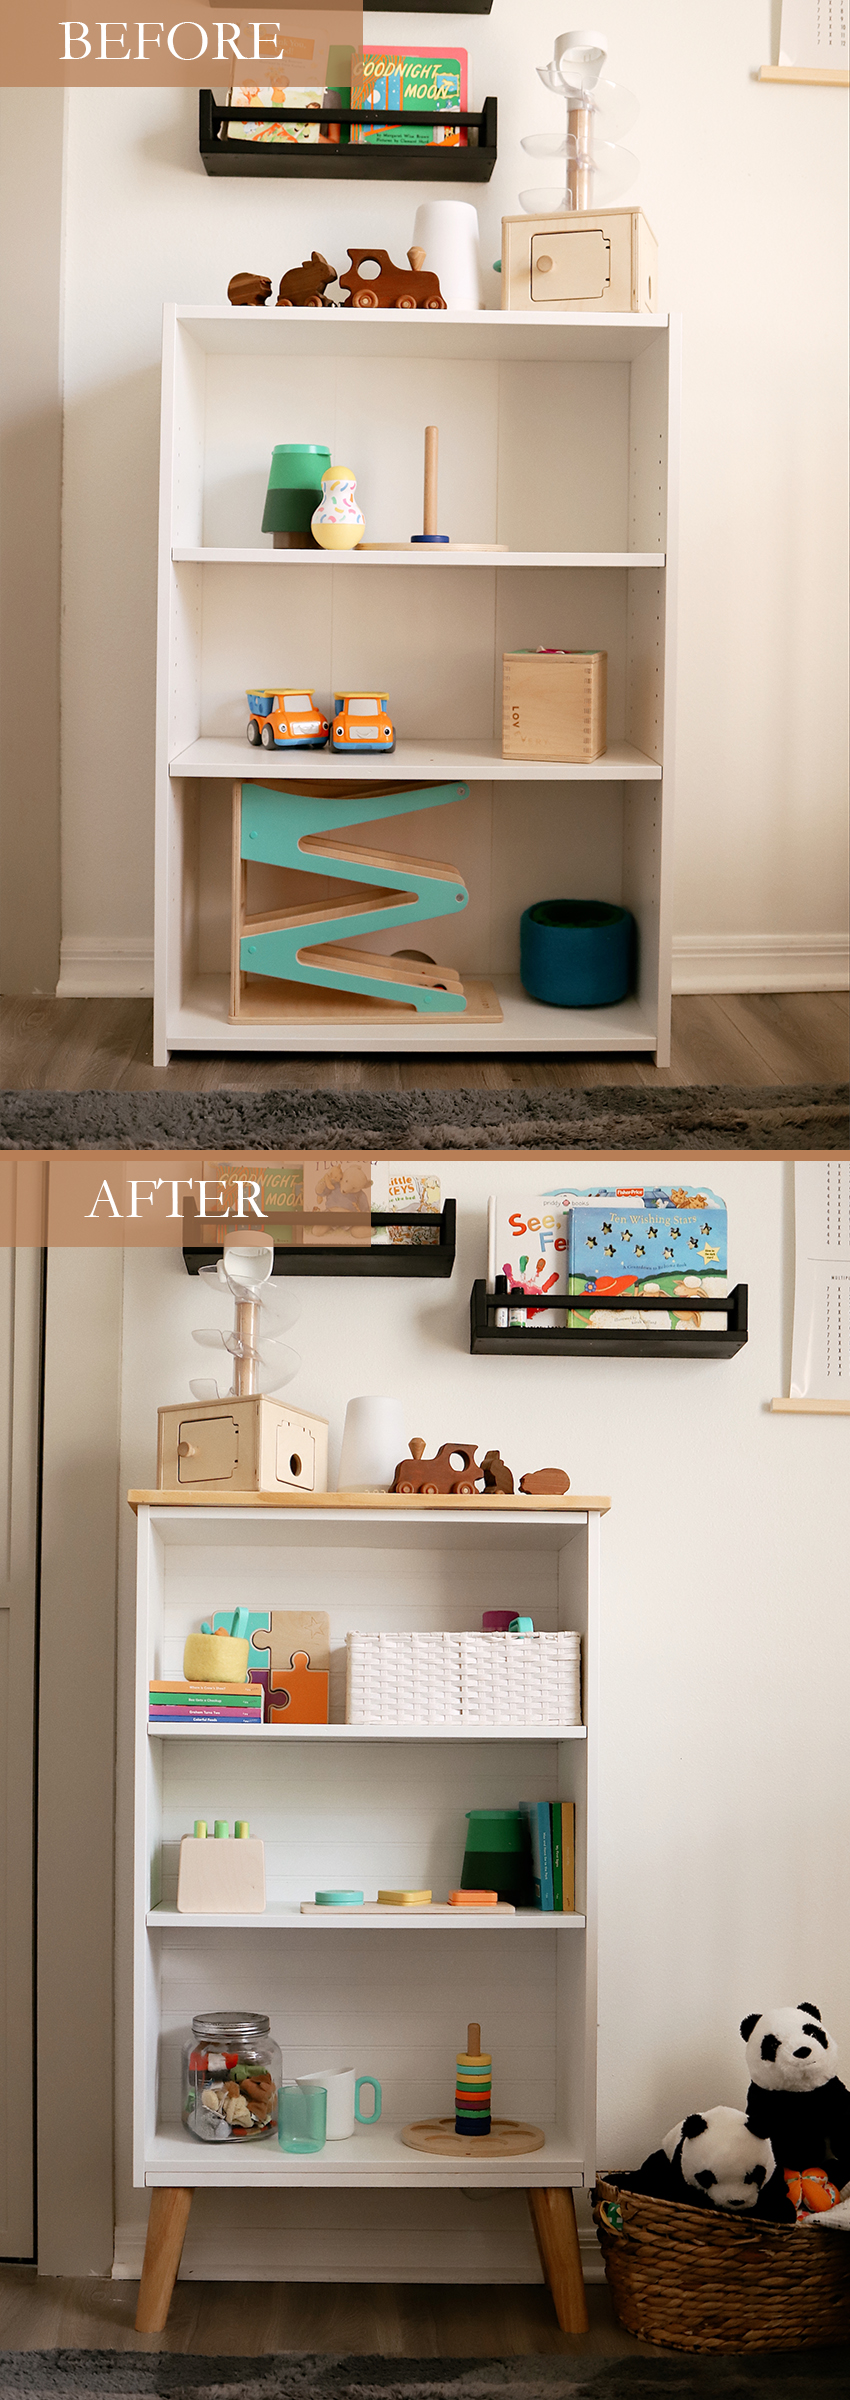 How to Upcycle your Cheap Bookcase into Stylish Mid Century Shelves: a Step by Step Tutorial featured by top FL DIY blogger, Tabitha Blue of Fresh Mommy Blog